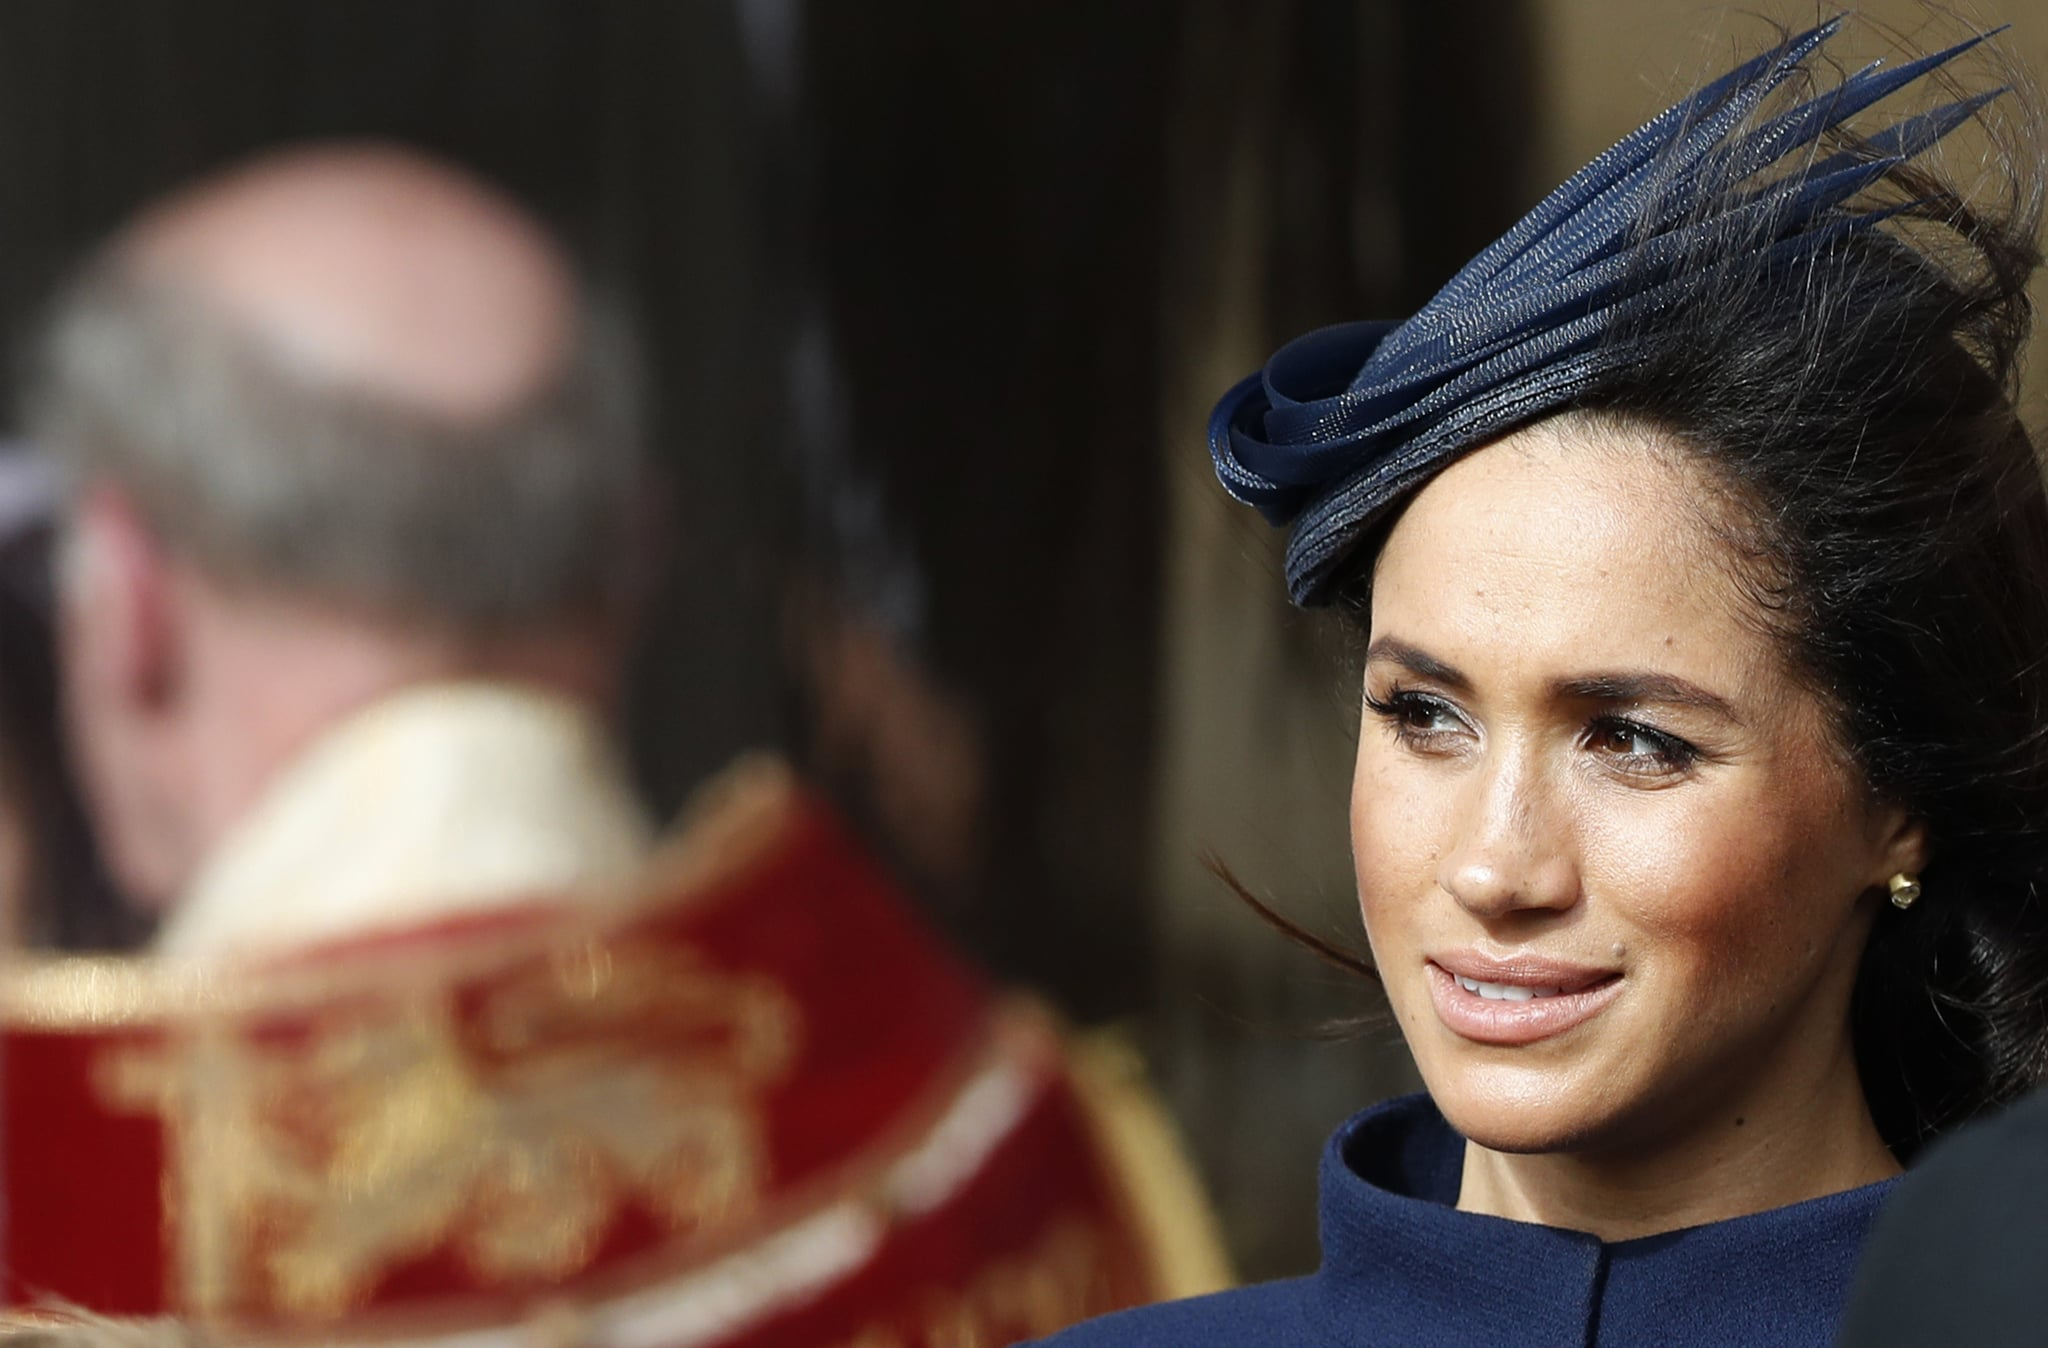 Forum on this topic: Meghan Markle Received a Drawing of Her , meghan-markle-received-a-drawing-of-her/